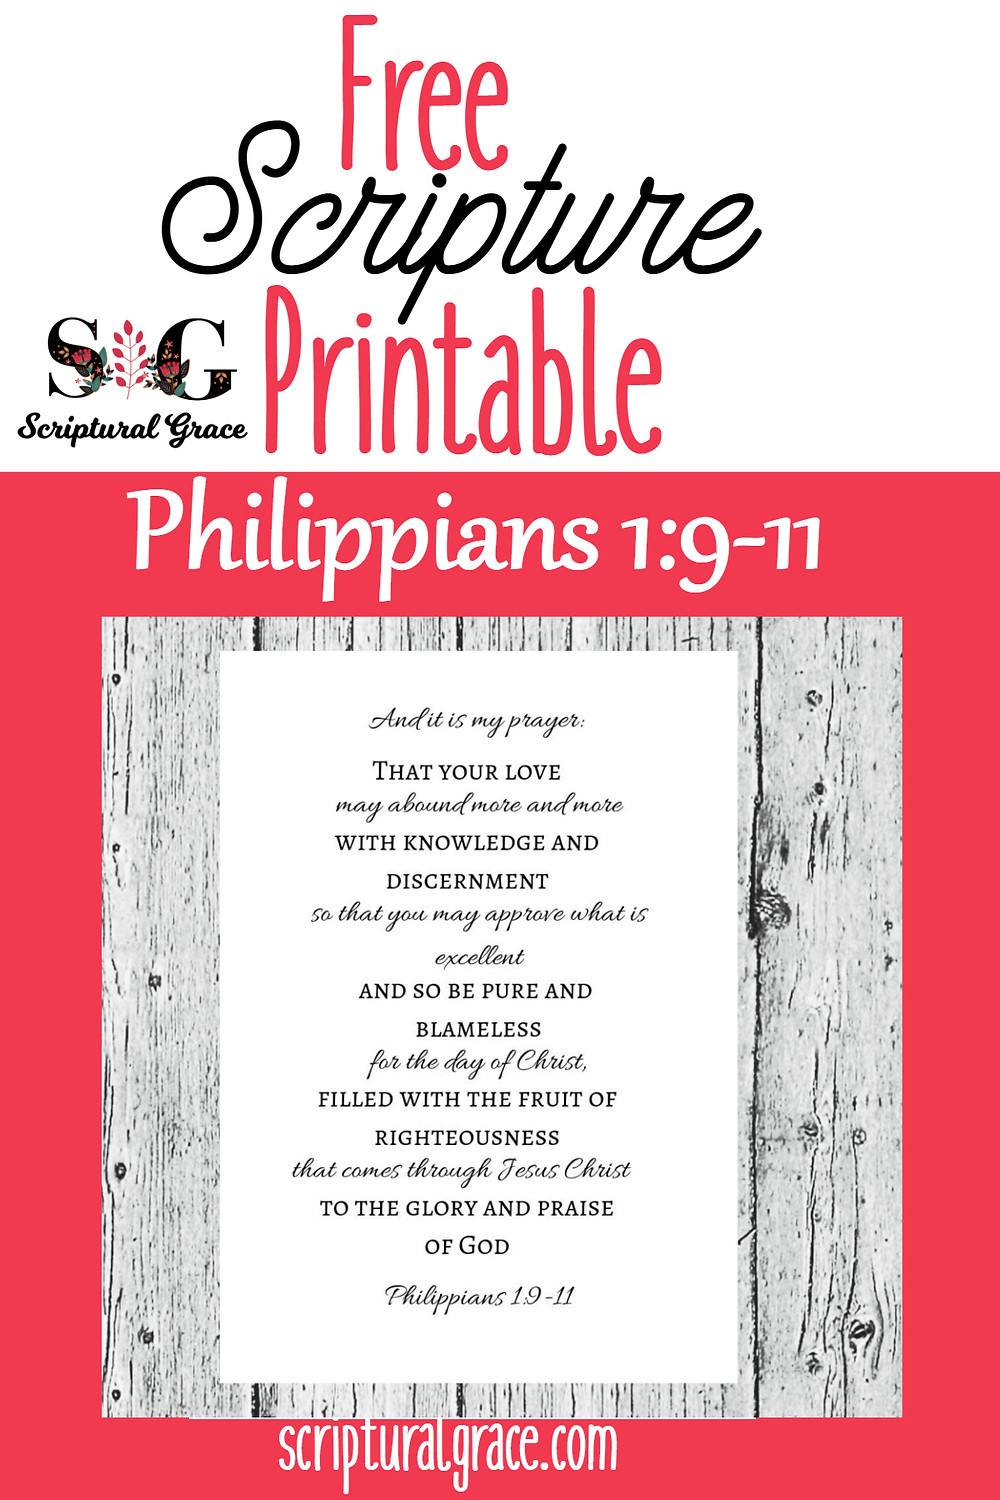 Free scripture printable on Philippians 1:9-11 #christianprintablr,#scripture, #bibleverse